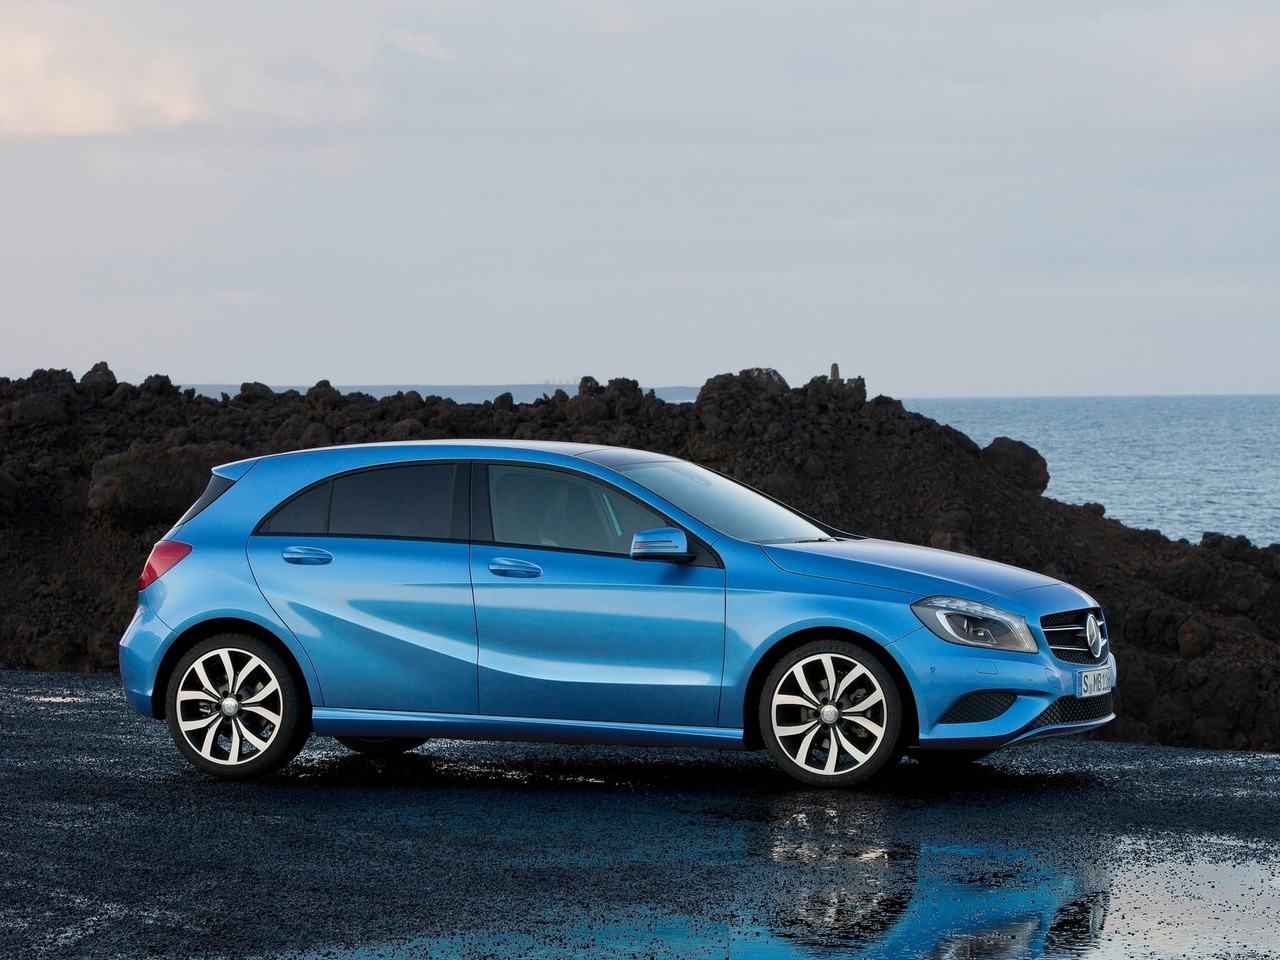 A balanced design gives the Mercedes Benz A-Class a new edge to a great drive.